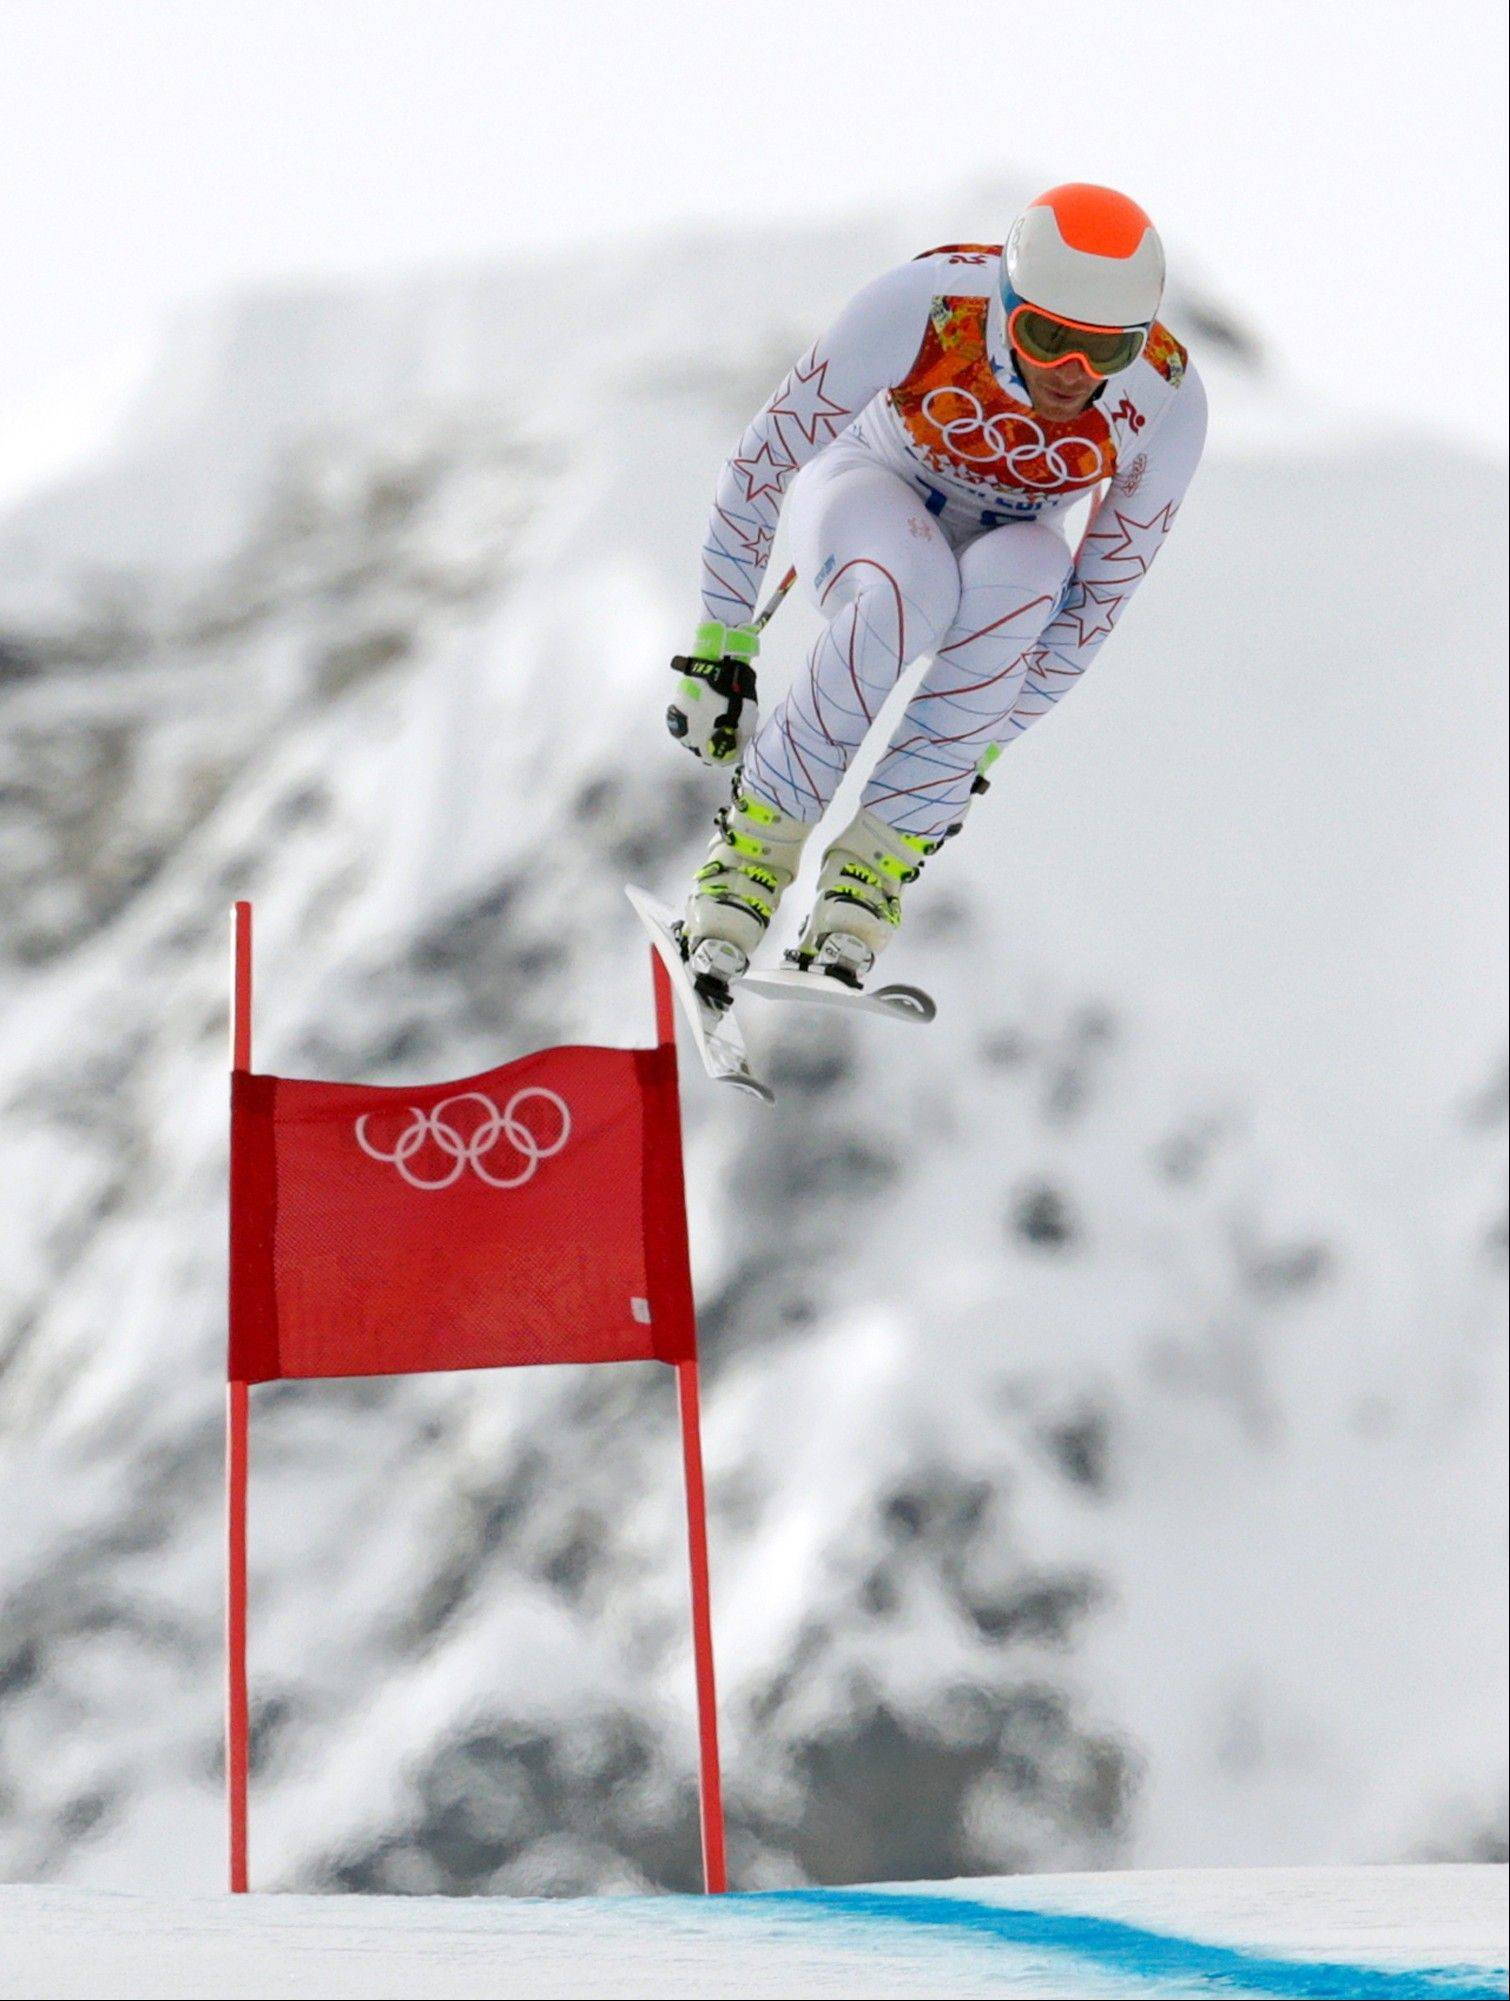 United States' Bode Miller jumps during the men's downhill at the Sochi 2014 Winter Olympics, Sunday, Feb. 9, 2014, in Krasnaya Polyana, Russia.